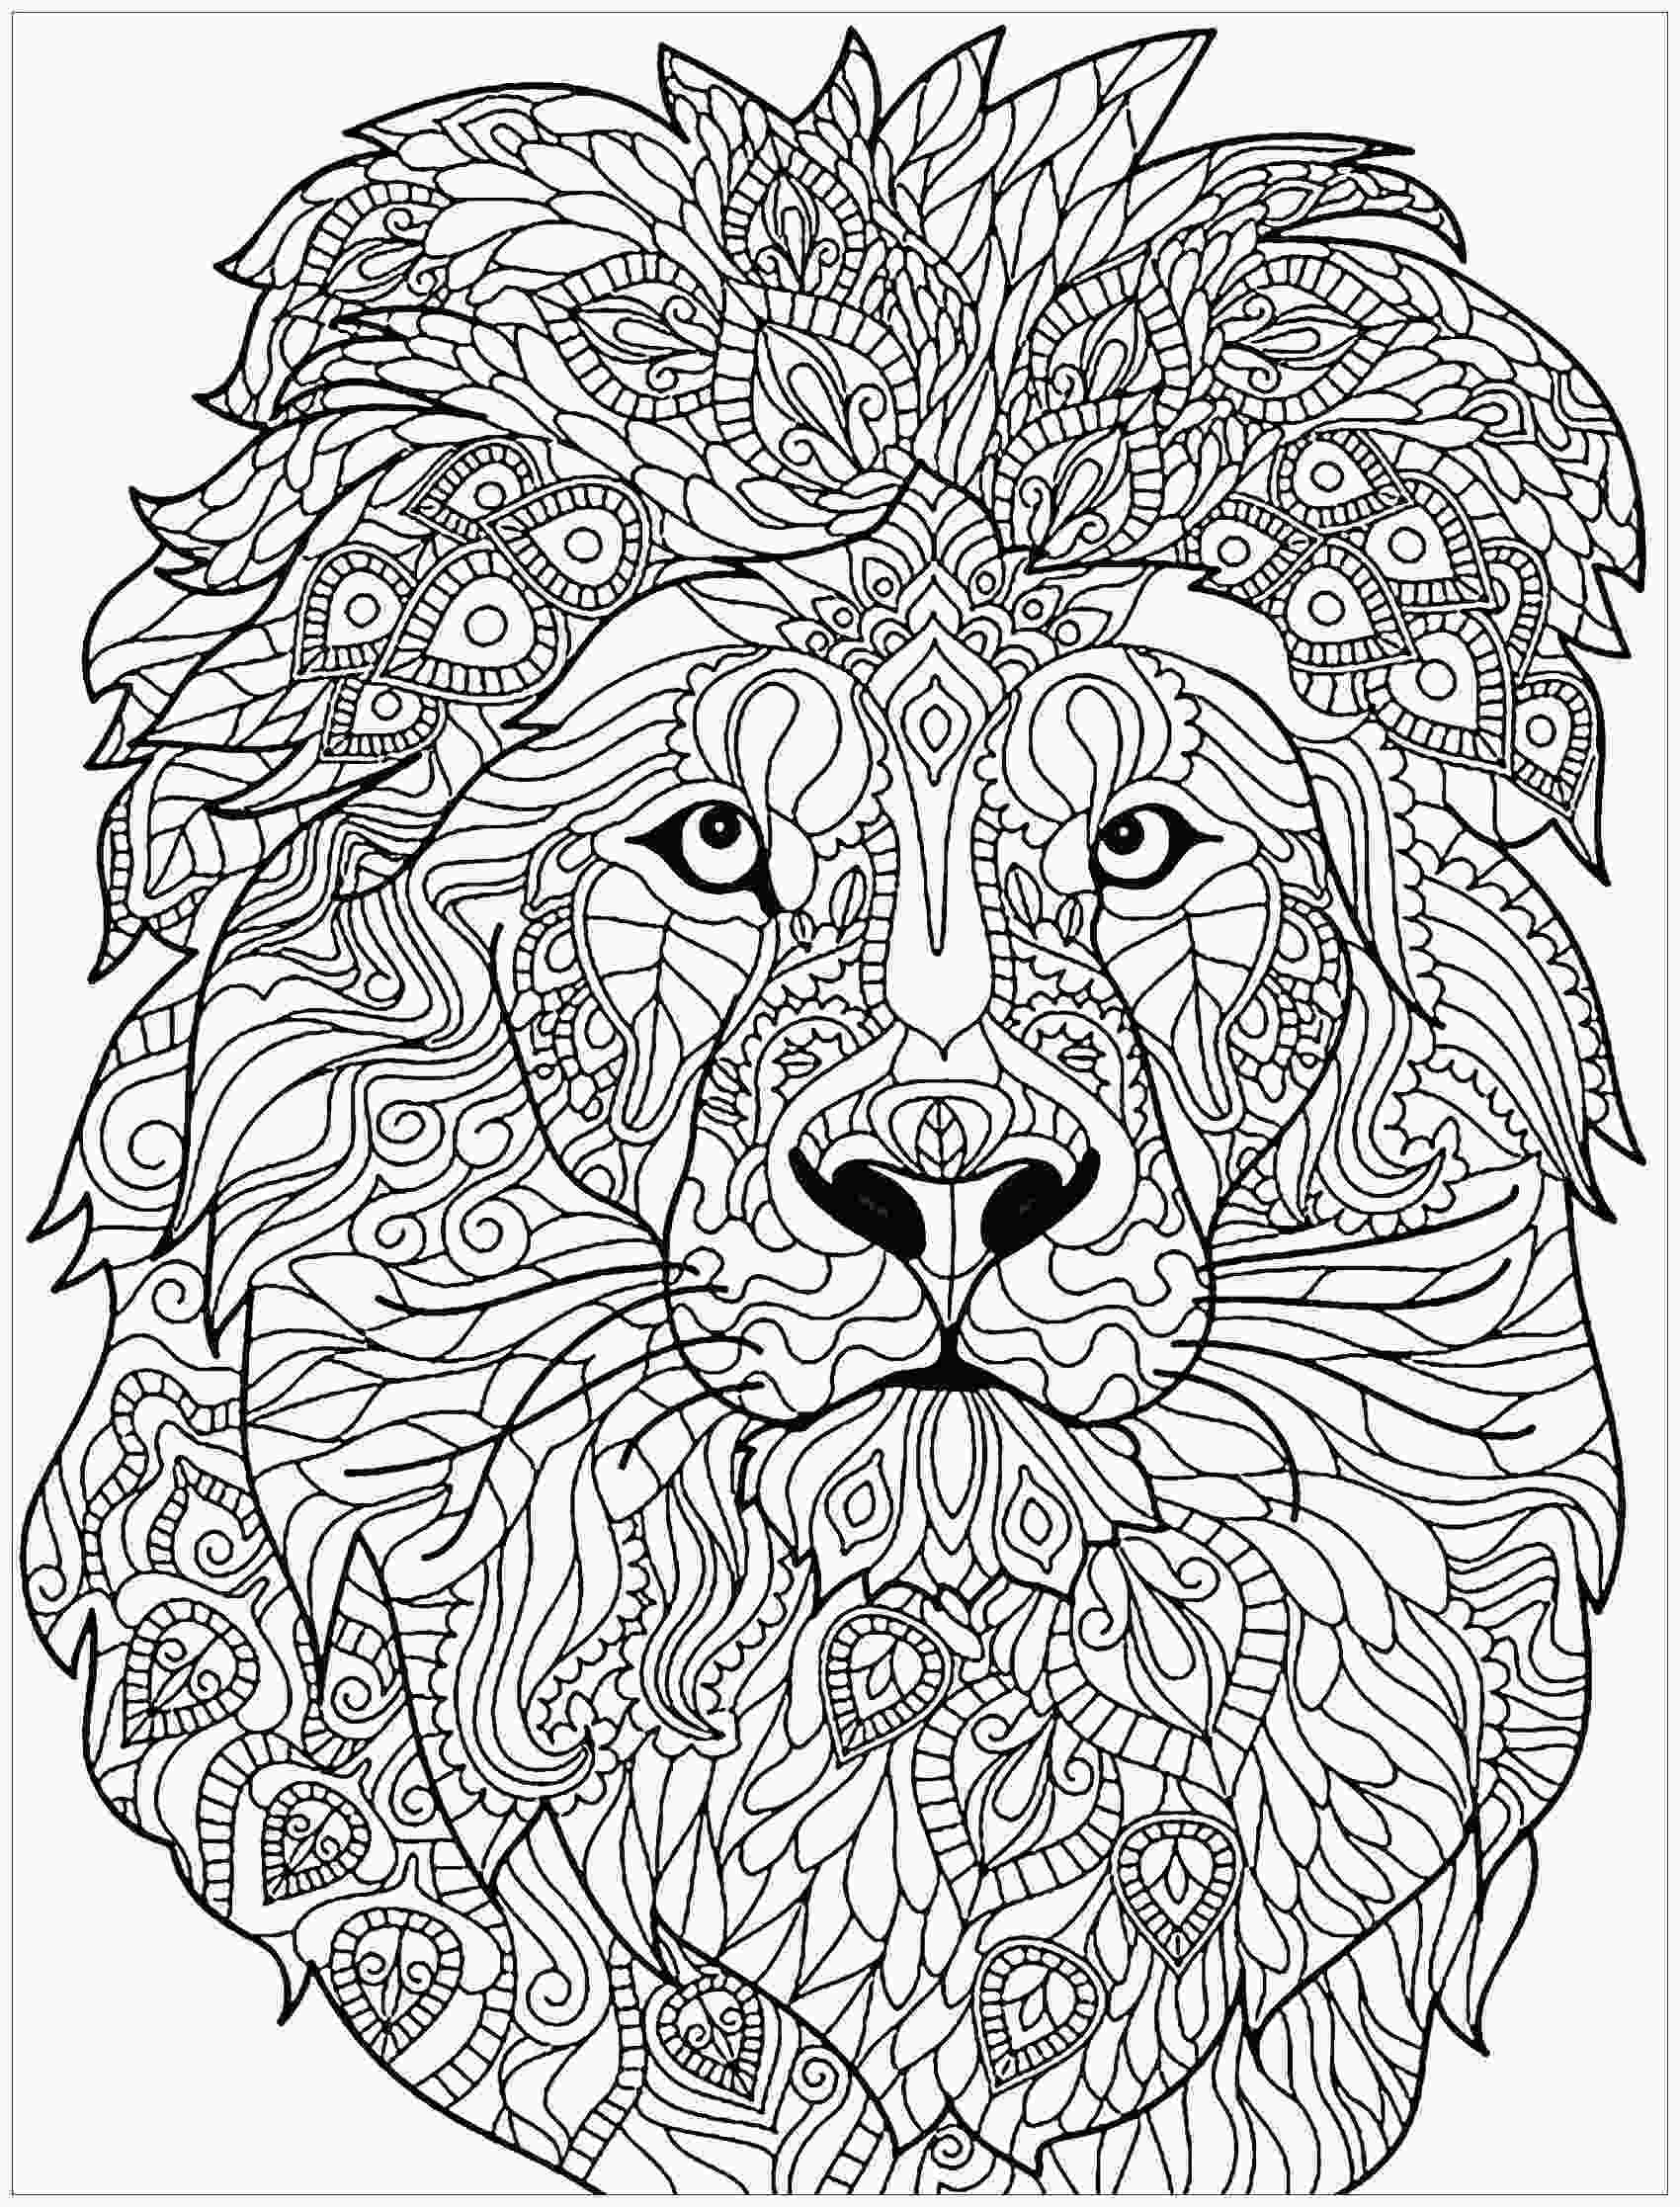 pictures of lions to color lion free to color for kids lion kids coloring pages